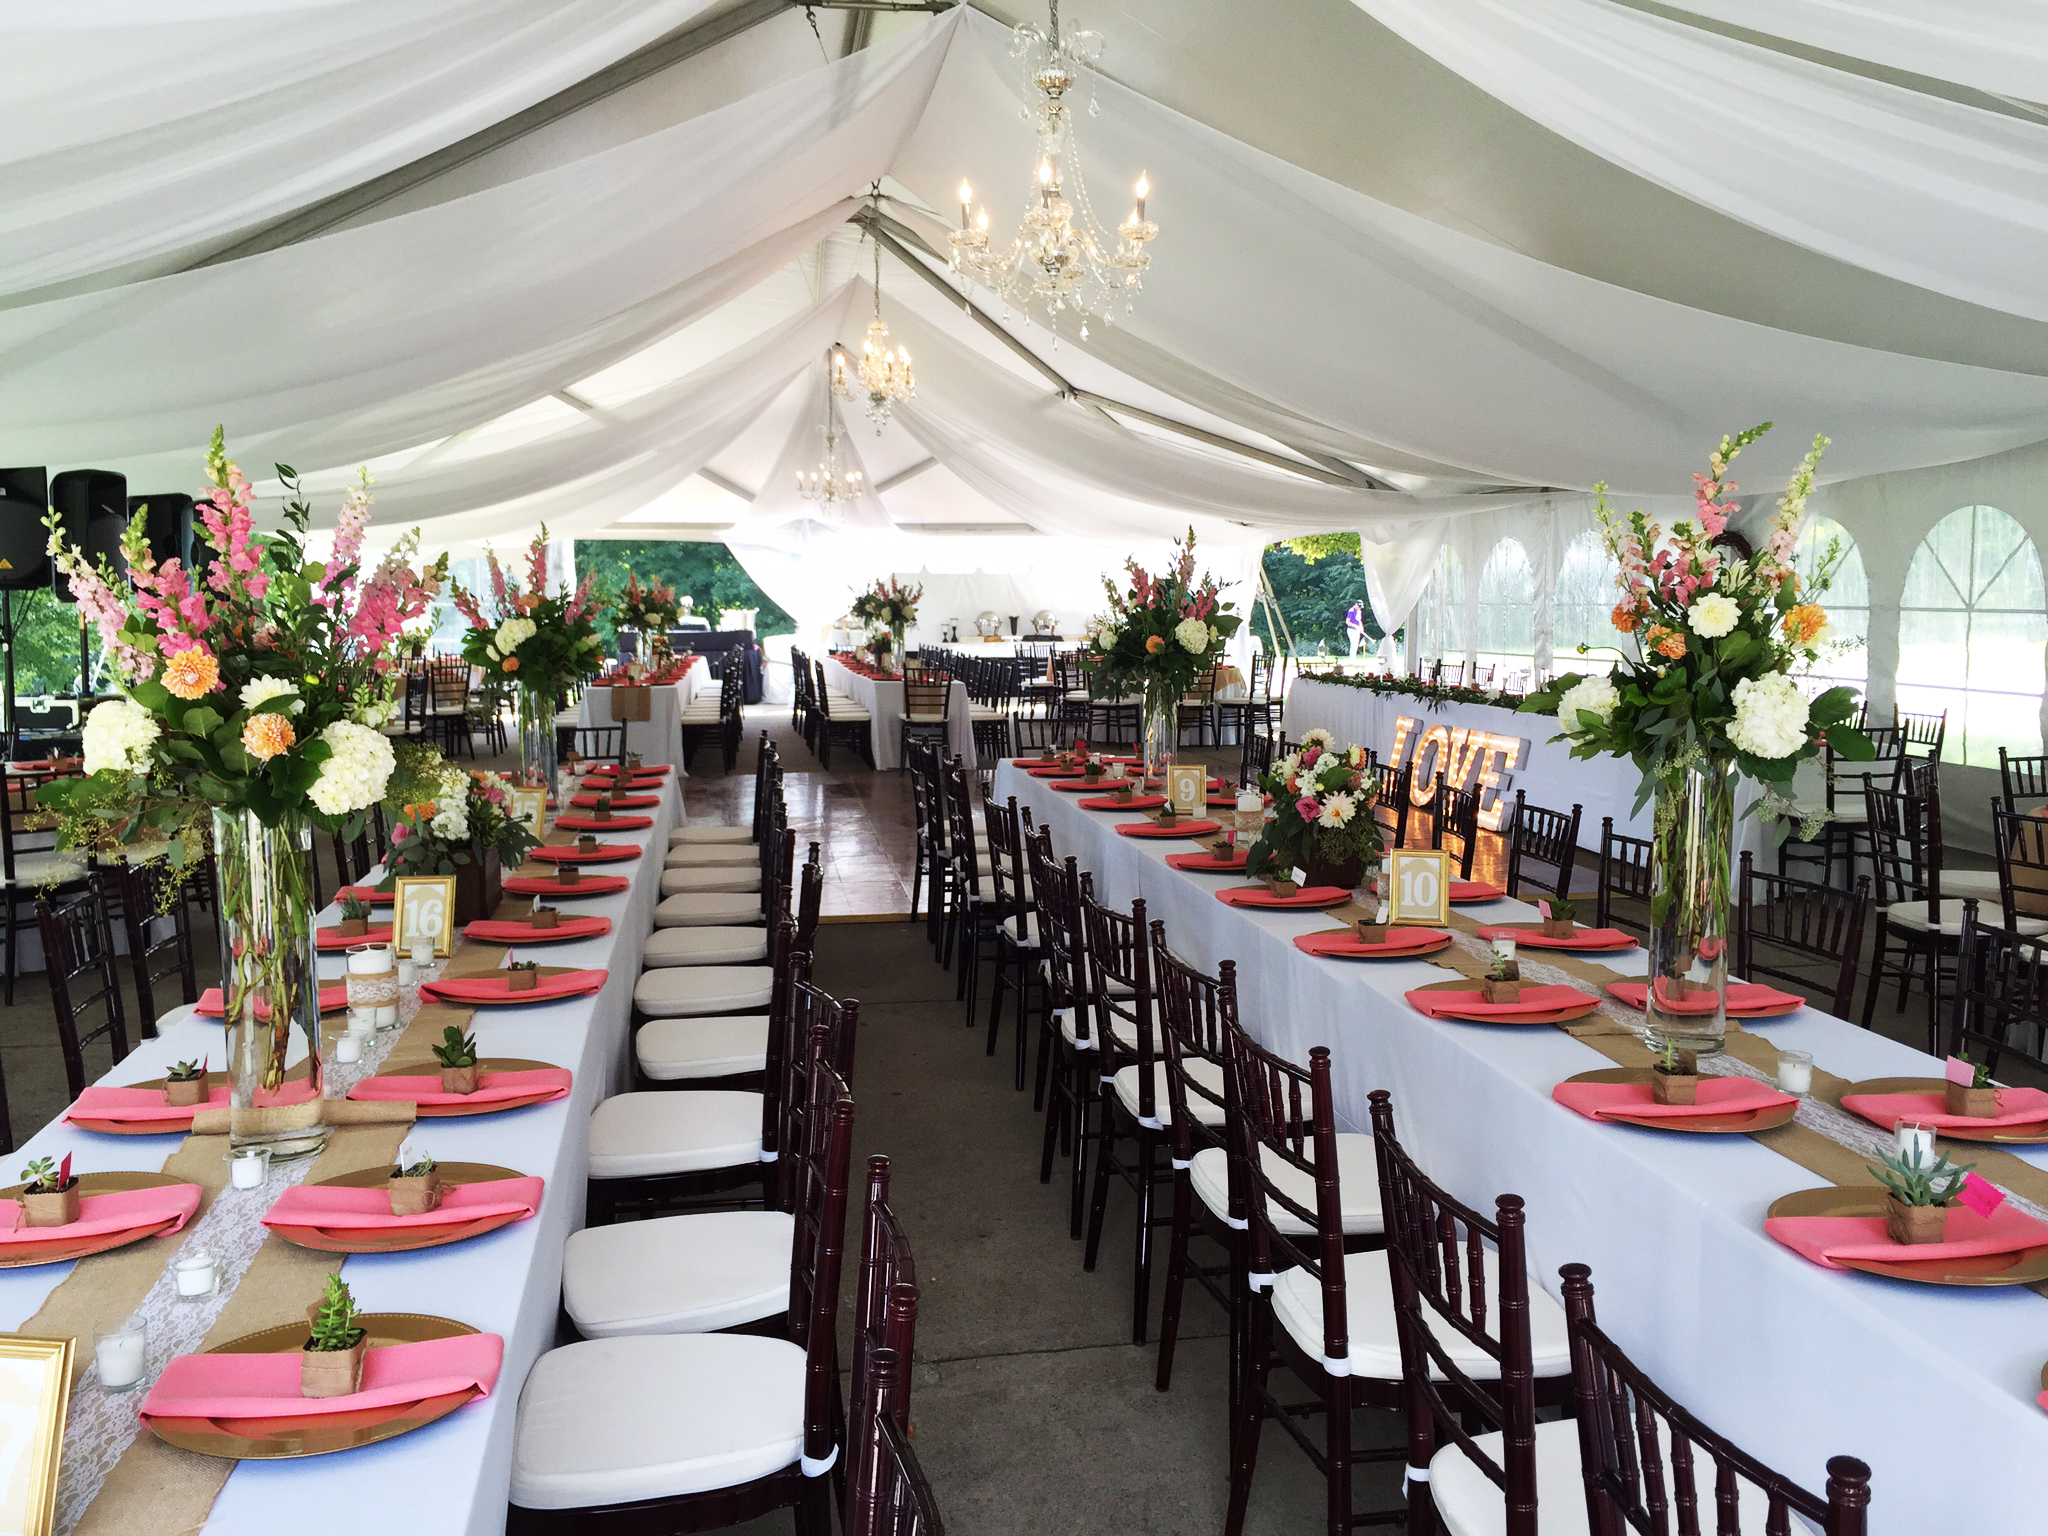 40' x 80' hybrid event tent/structure rental: iowa, il, mo & wi